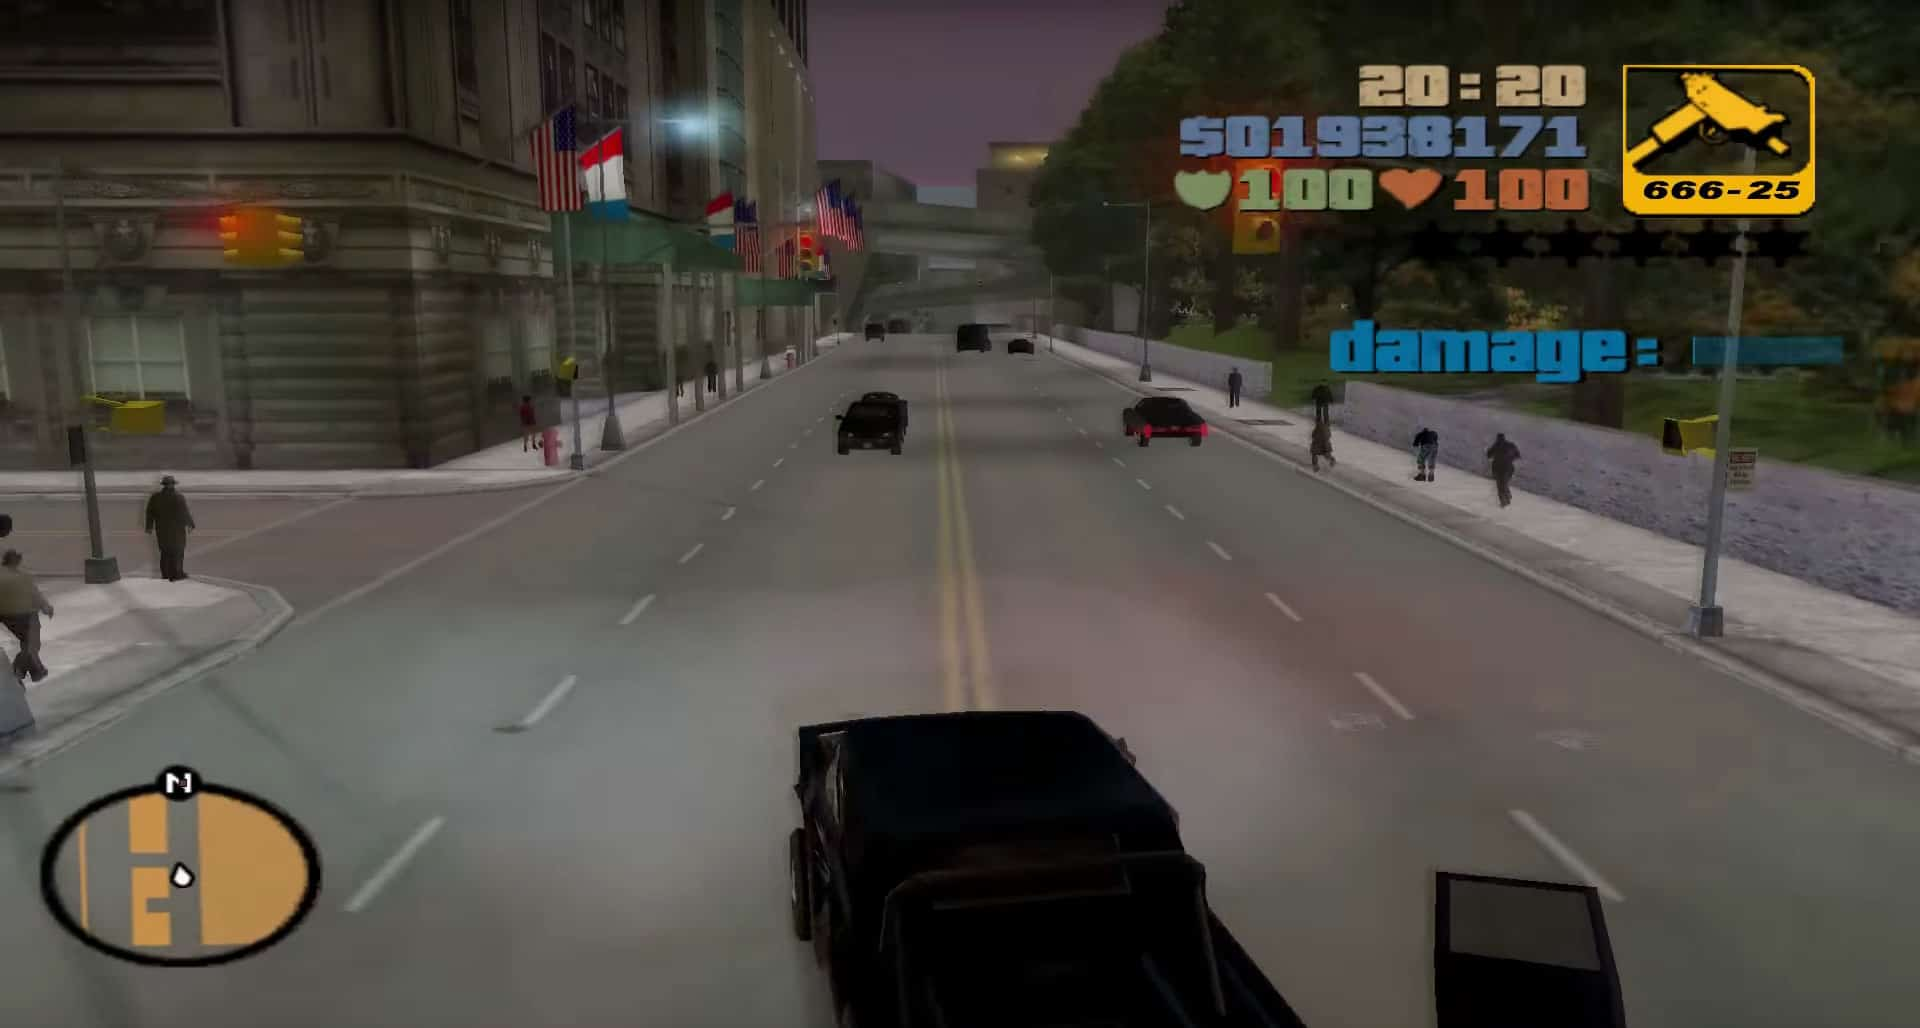 GTA 4 Real Times Square New York Mods 2012 Hack Tool